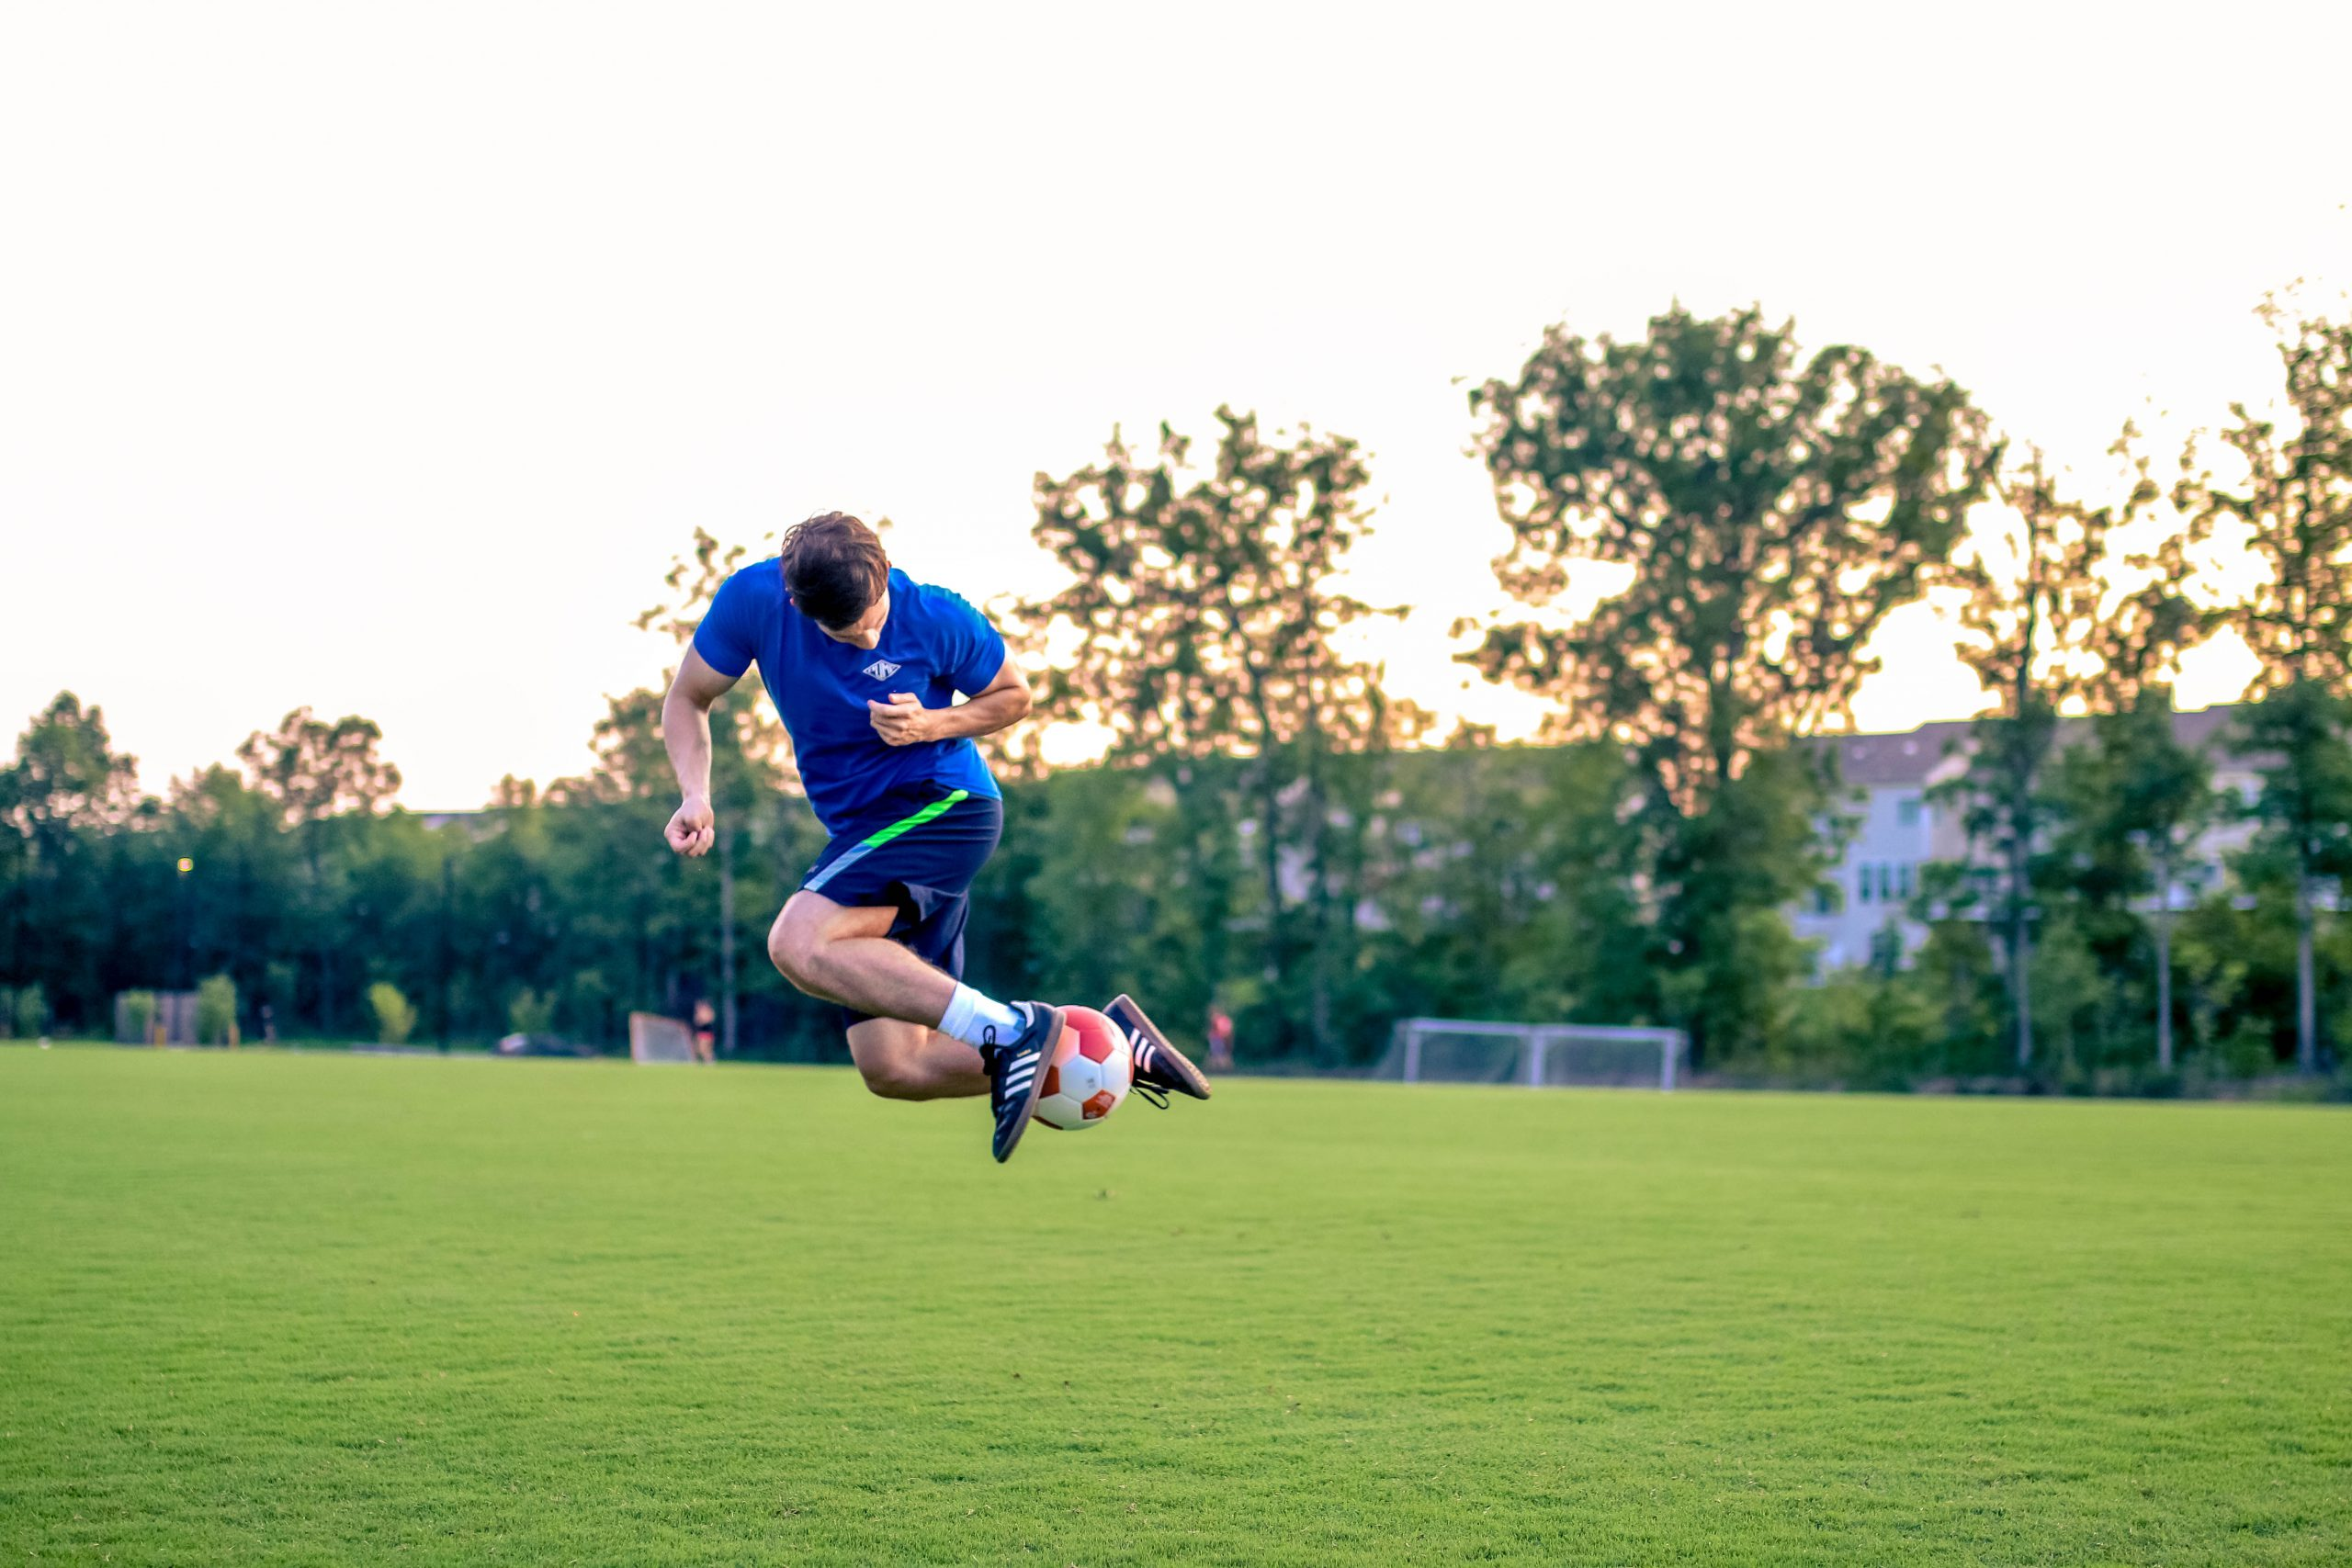 The Downsides of America's Extremely Competitive Youth Soccer Scene